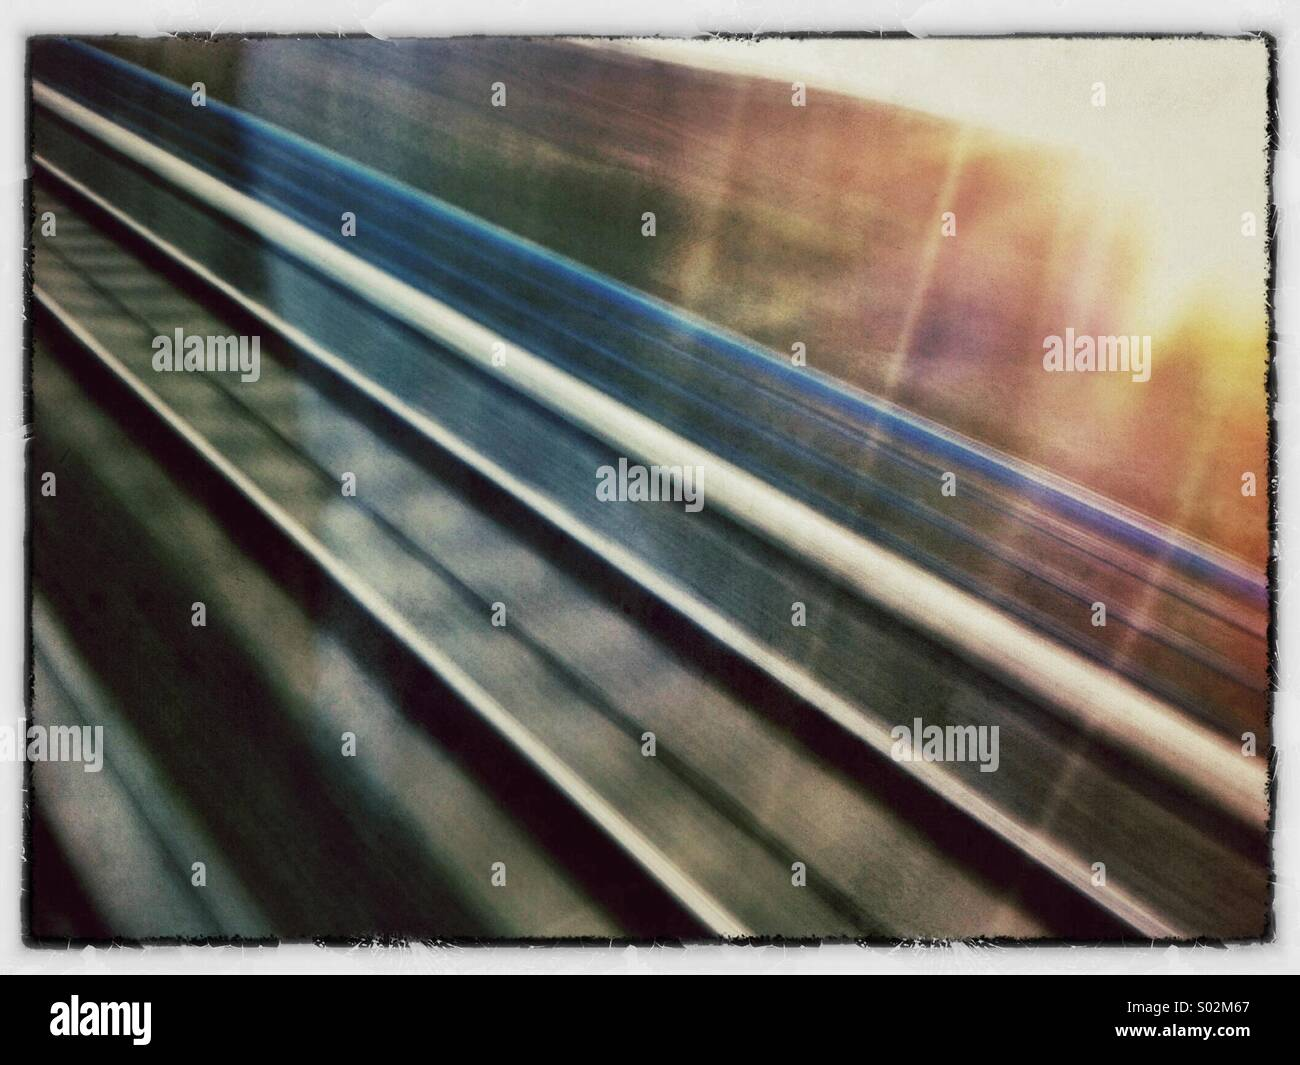 Railroad tracks from a moving train - Stock Image